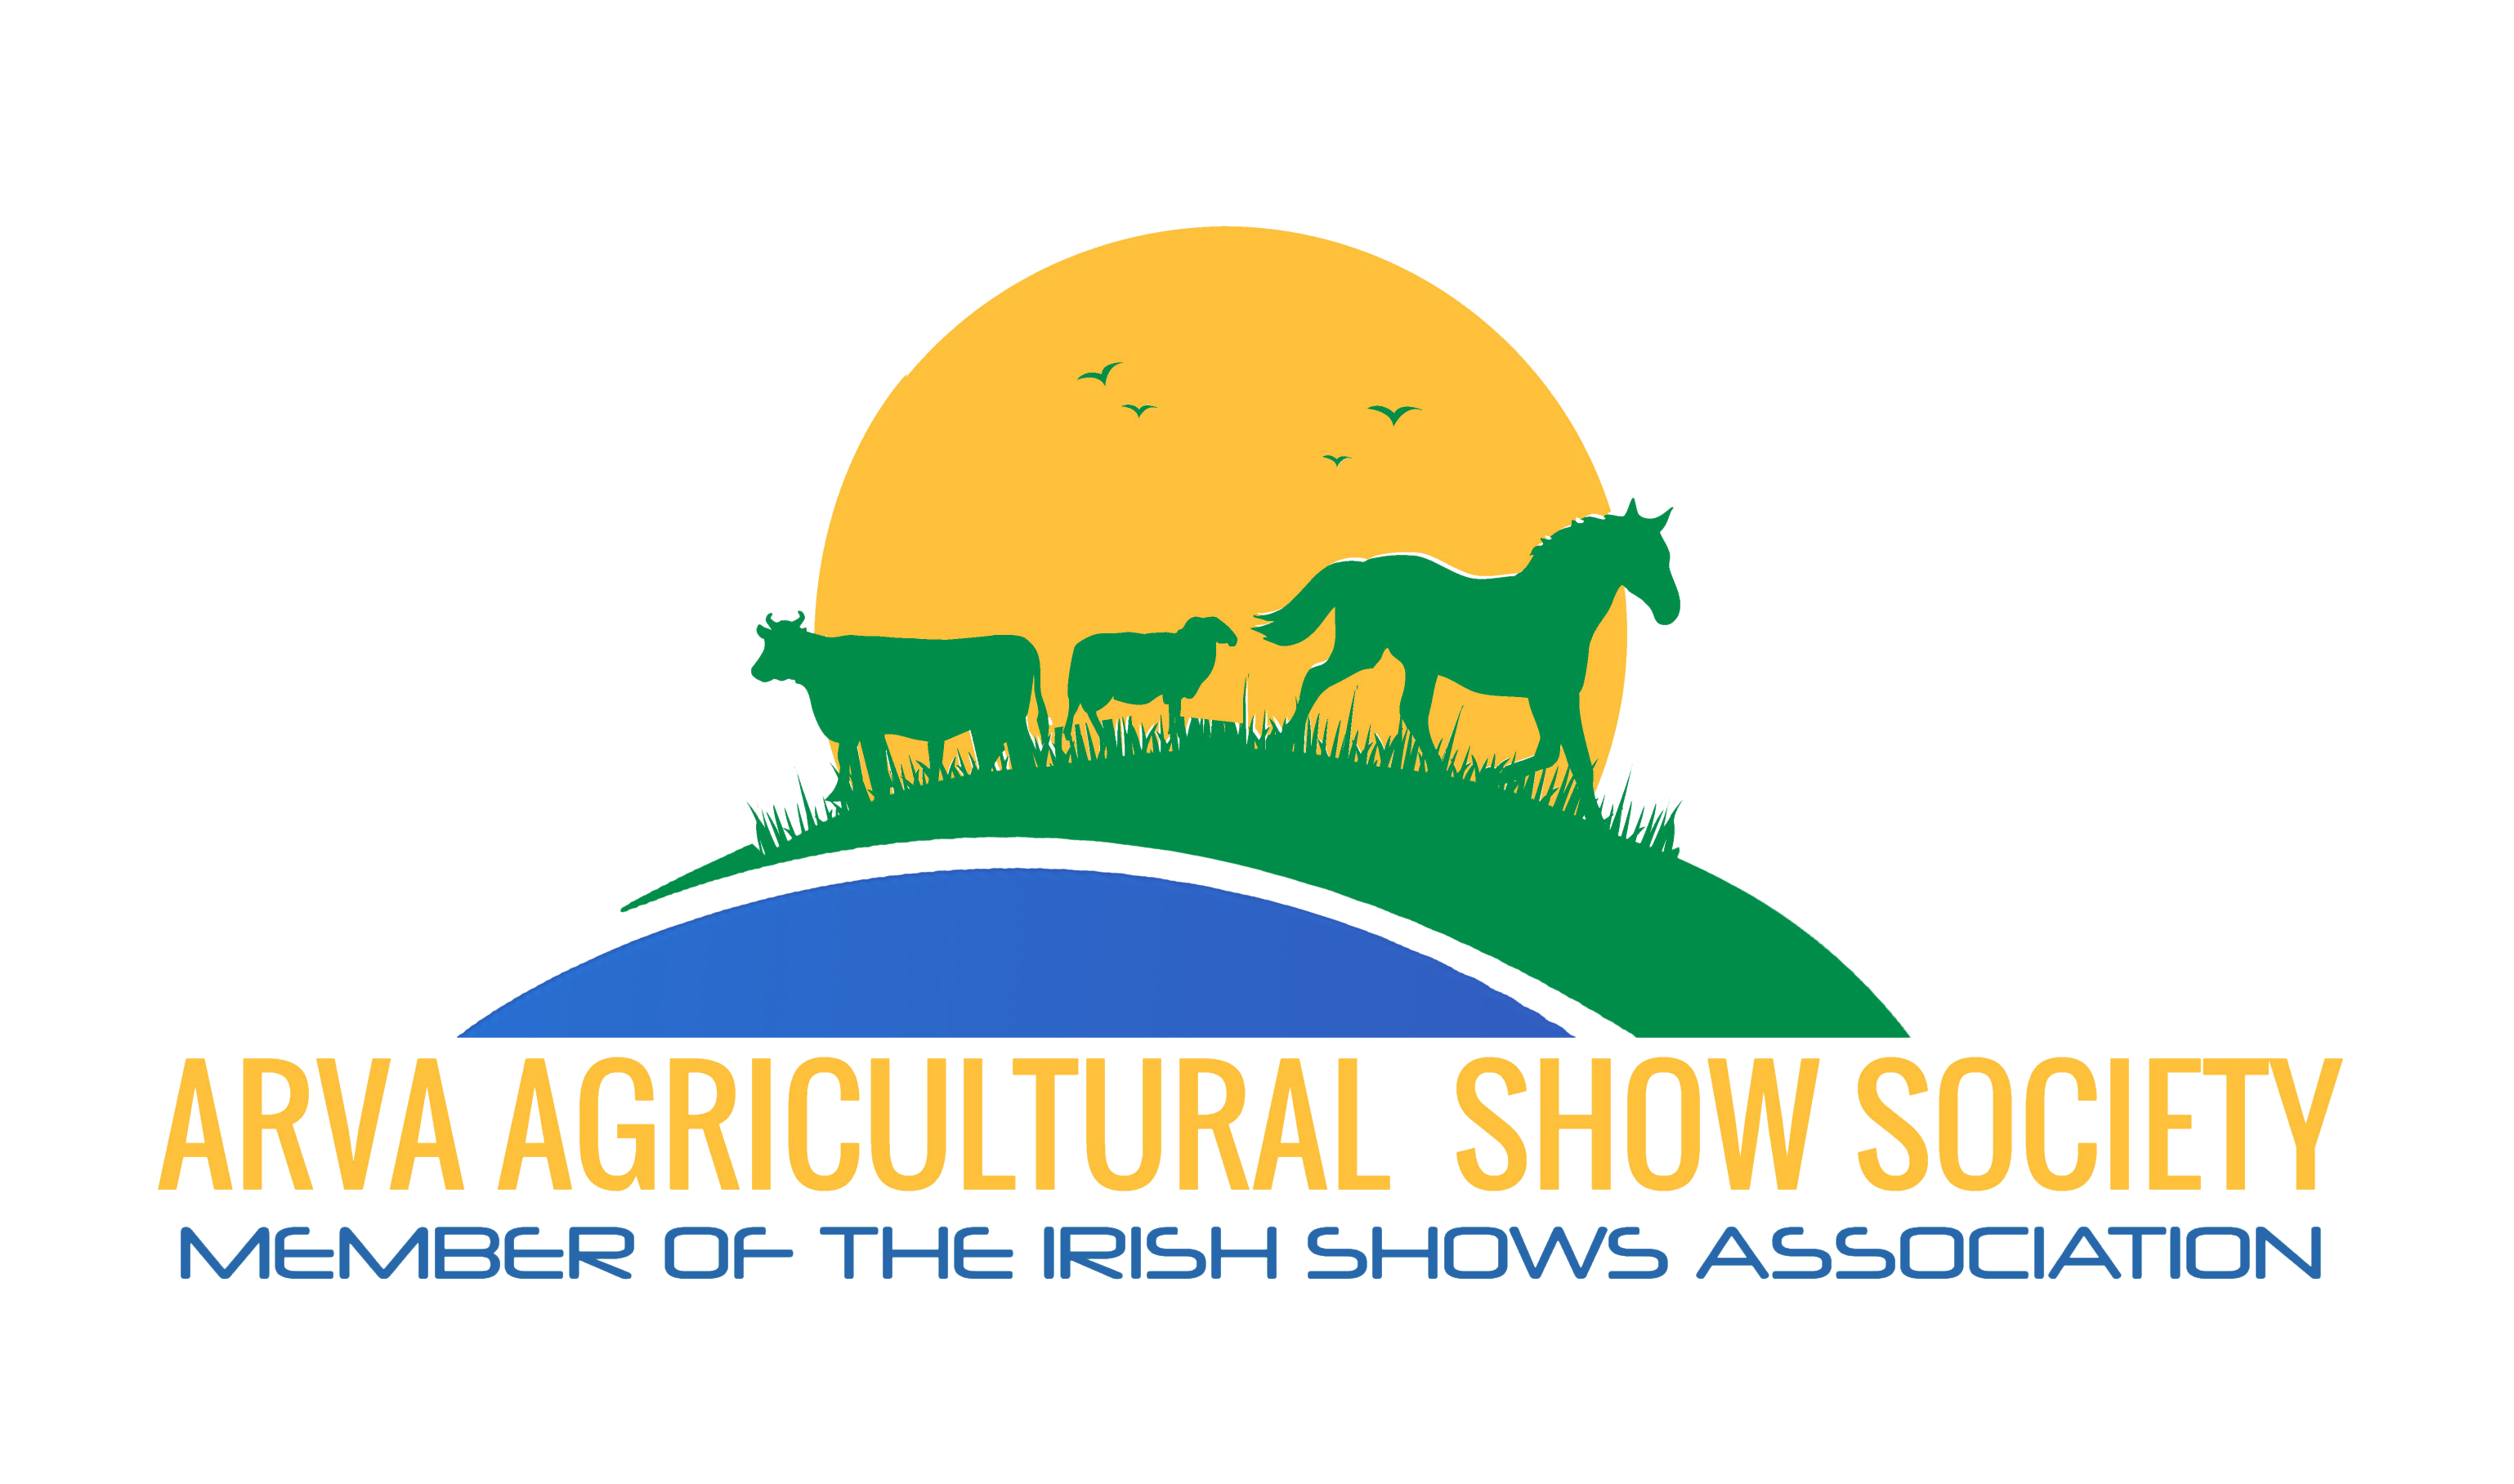 Arva Agricultural Show Society